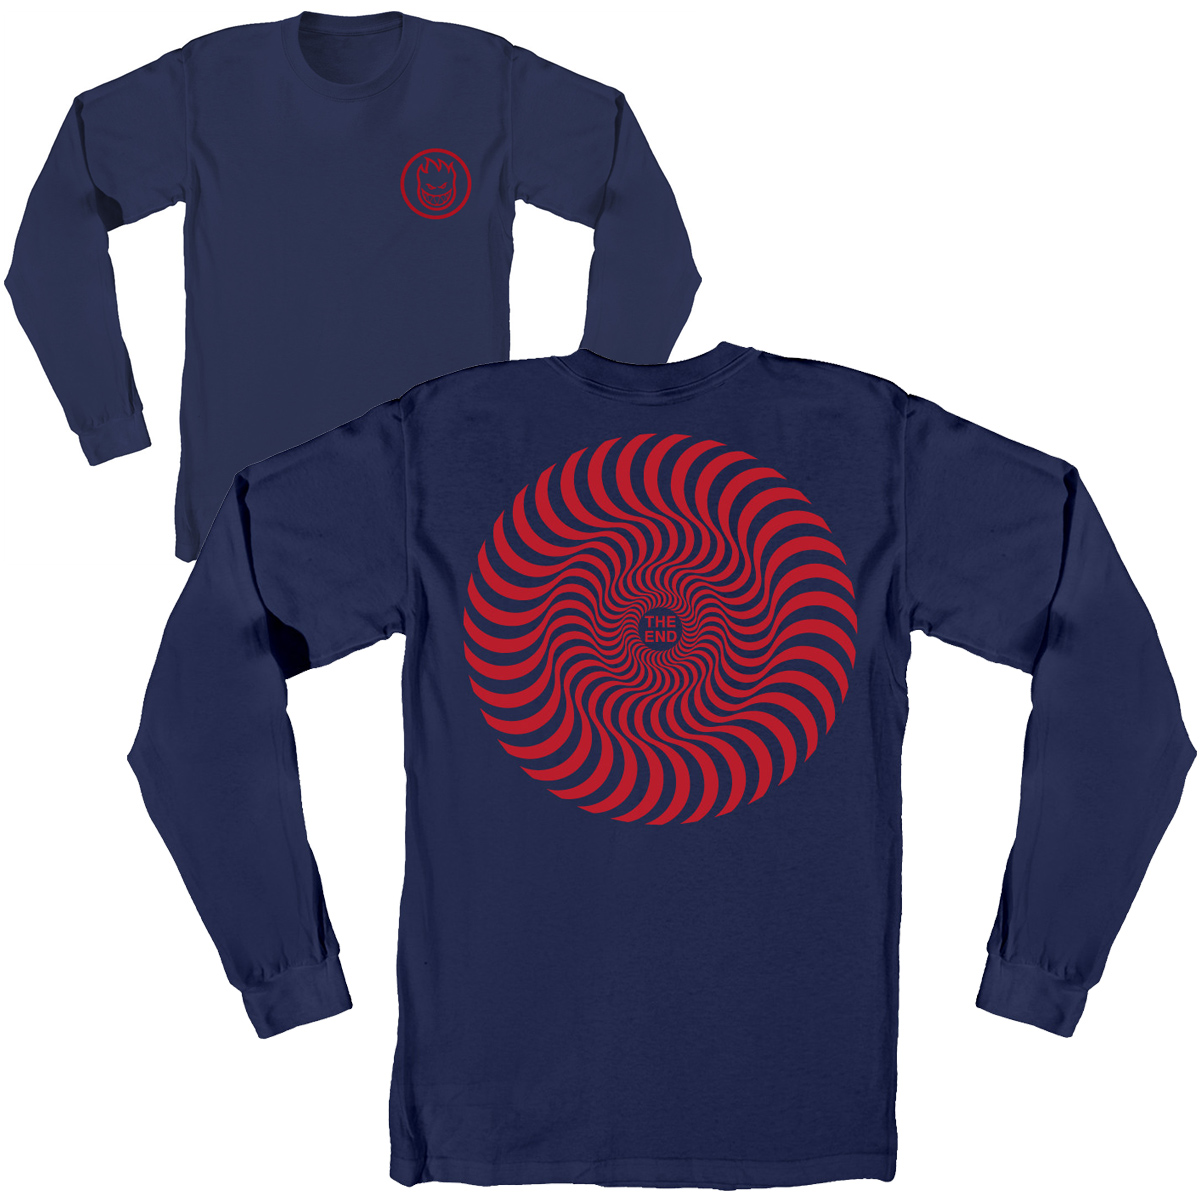 SF LS TEE CLSC SWIRL NVY L - Click to enlarge